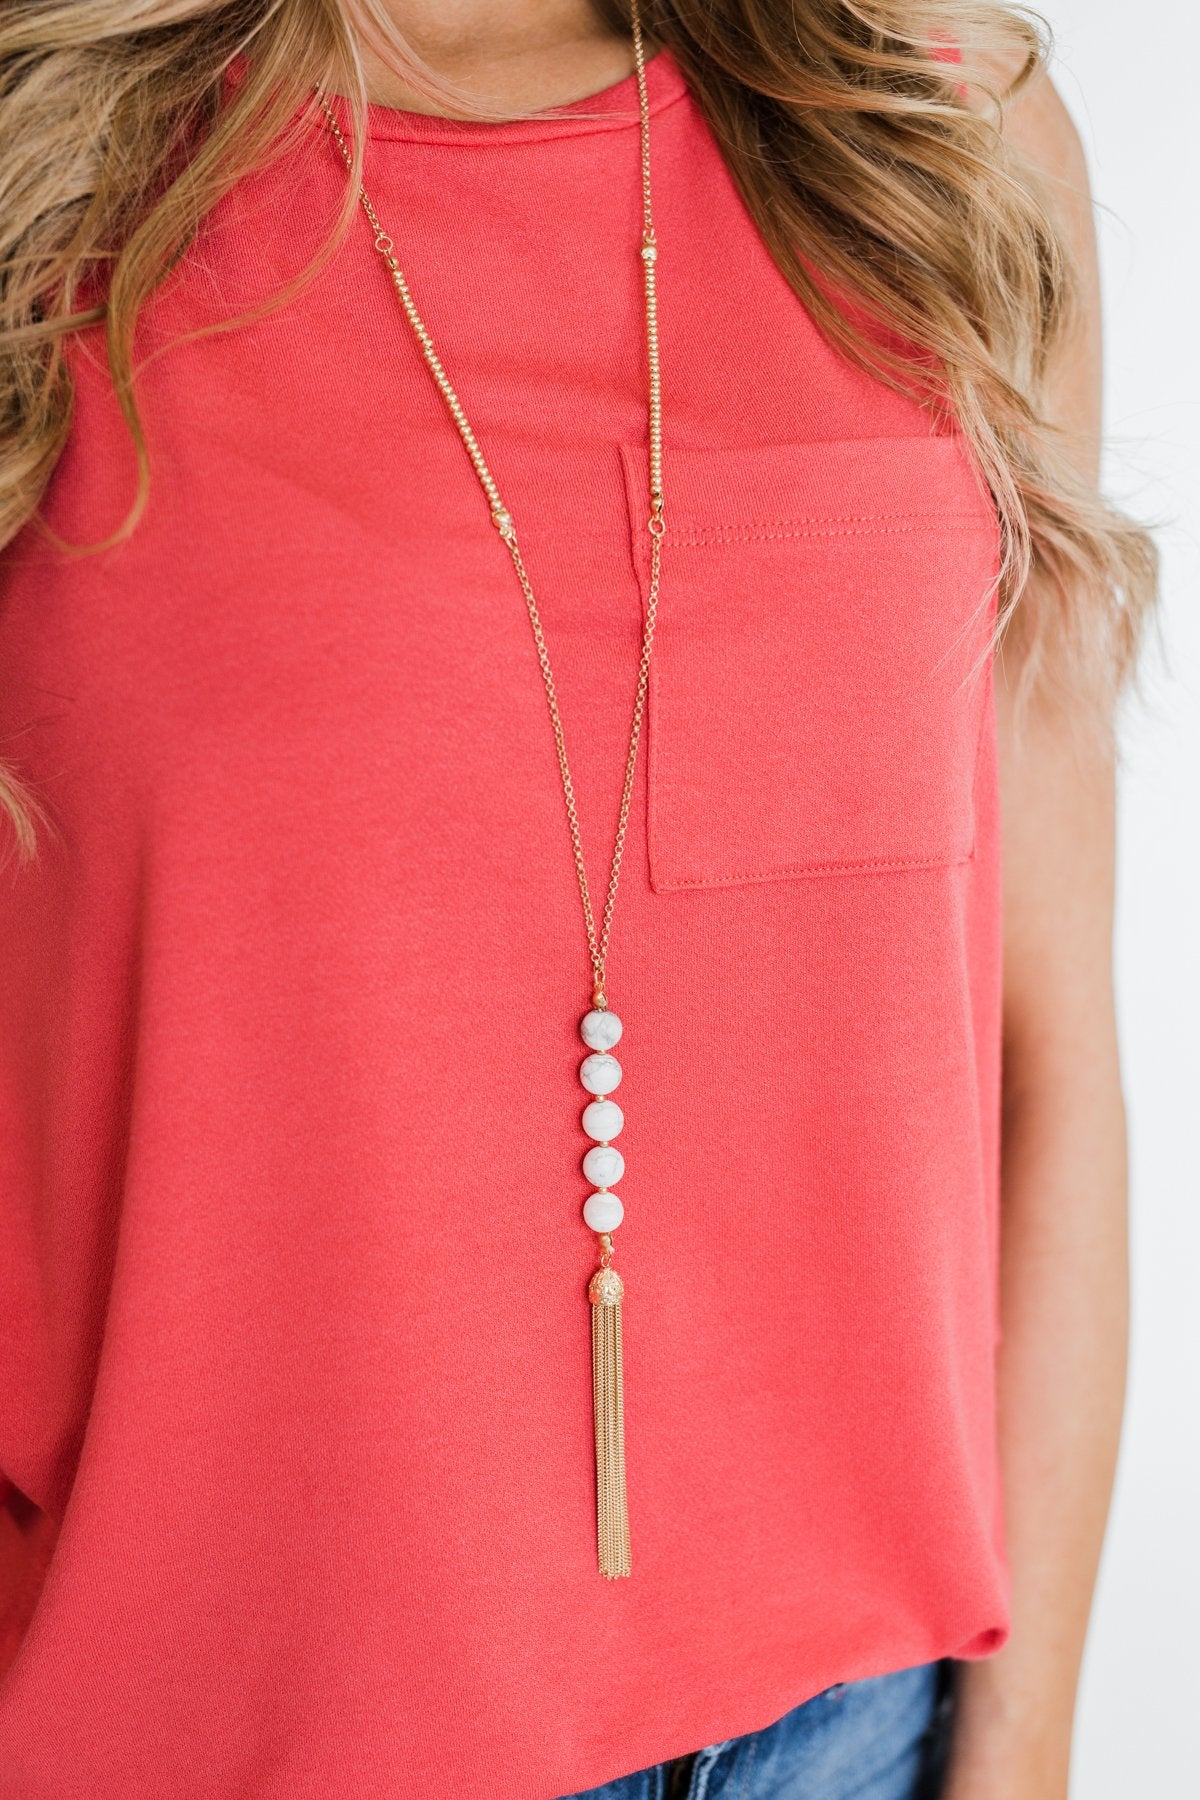 Adjustable Beaded Tassel Necklace- White Marble